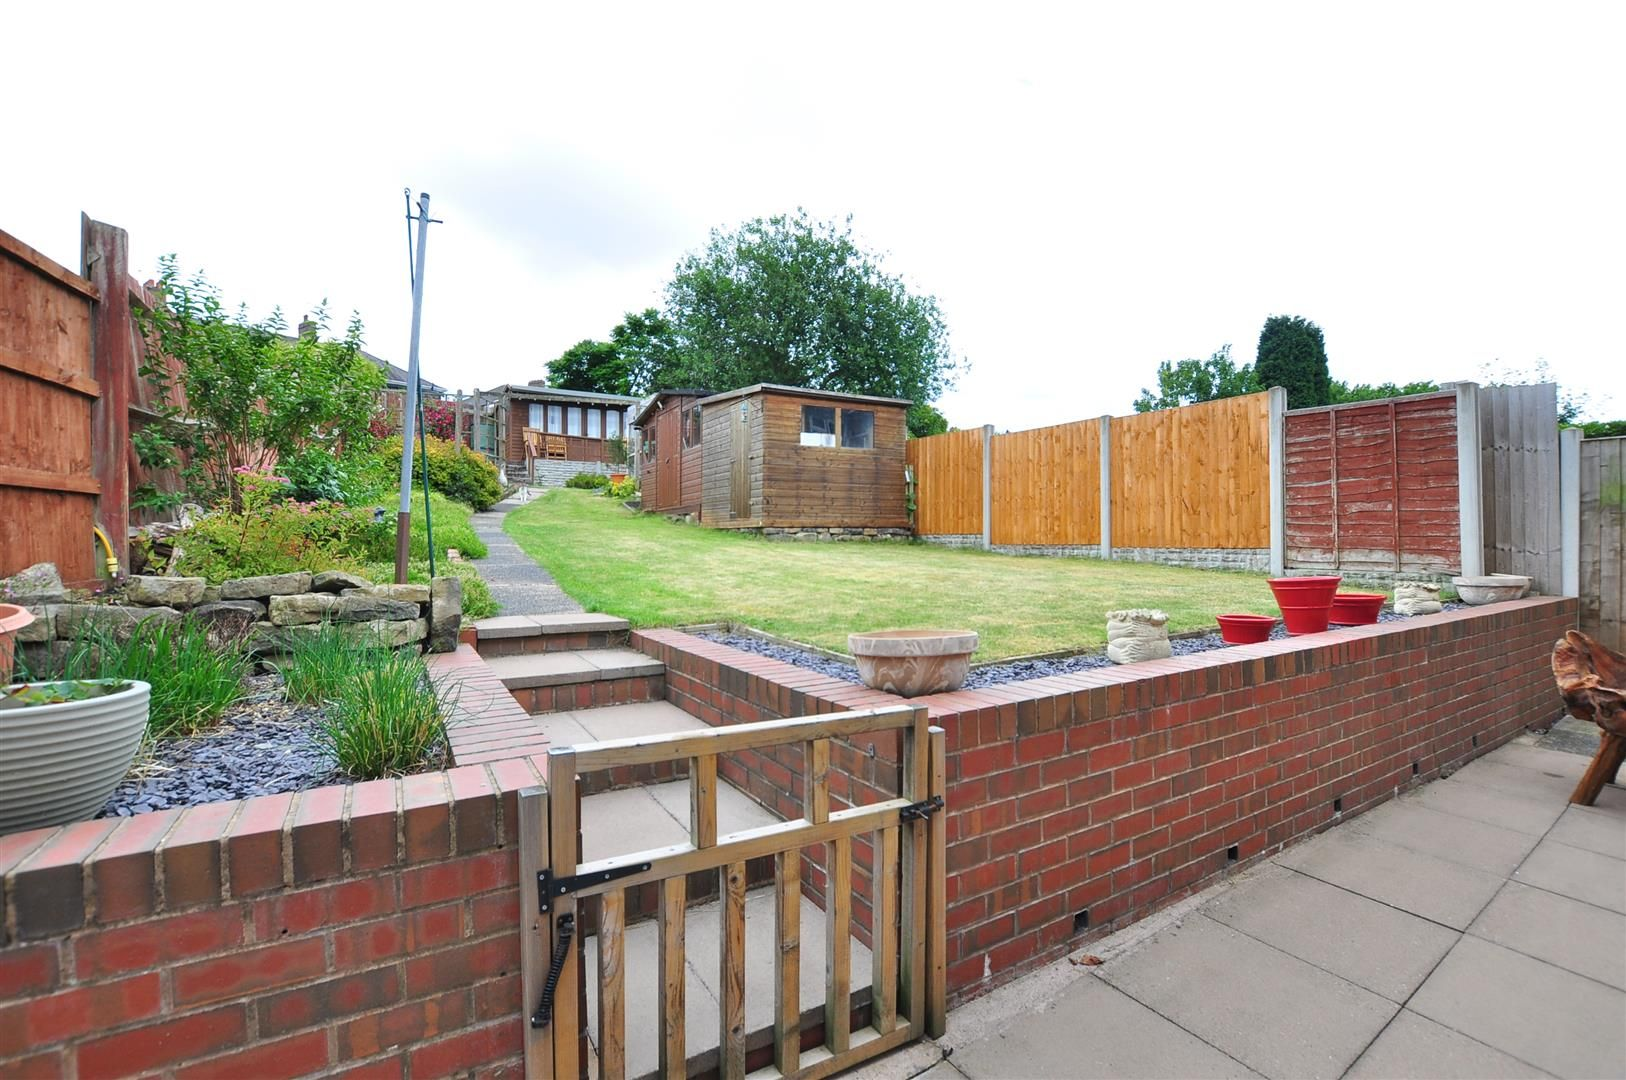 3 bed semi-detached for sale in Lower Gornal  - Property Image 15